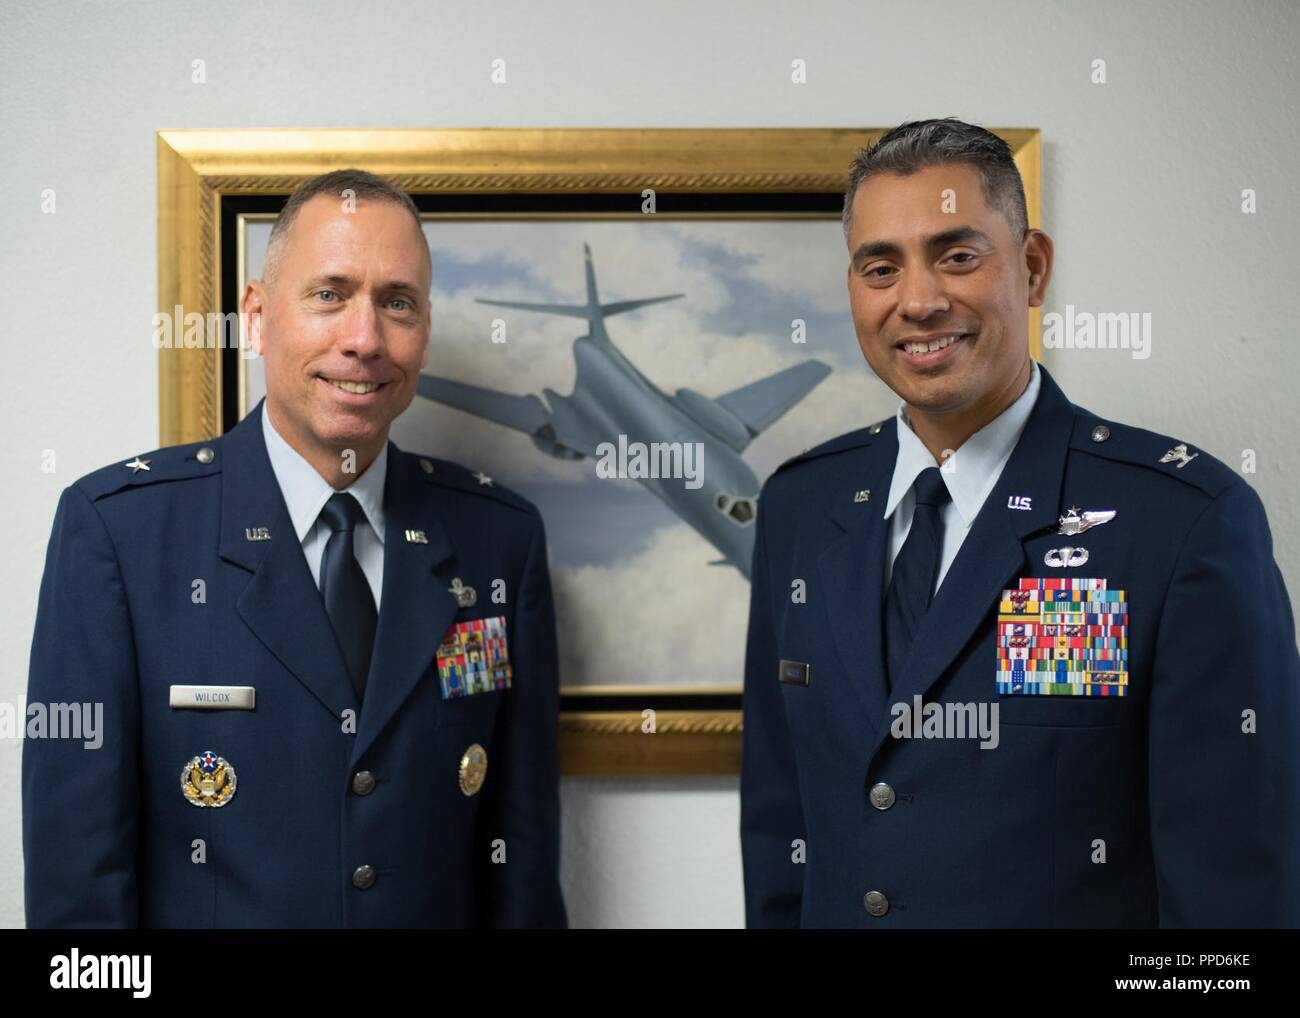 Lt  Col  David Arriola promotes to the rank of Col  at